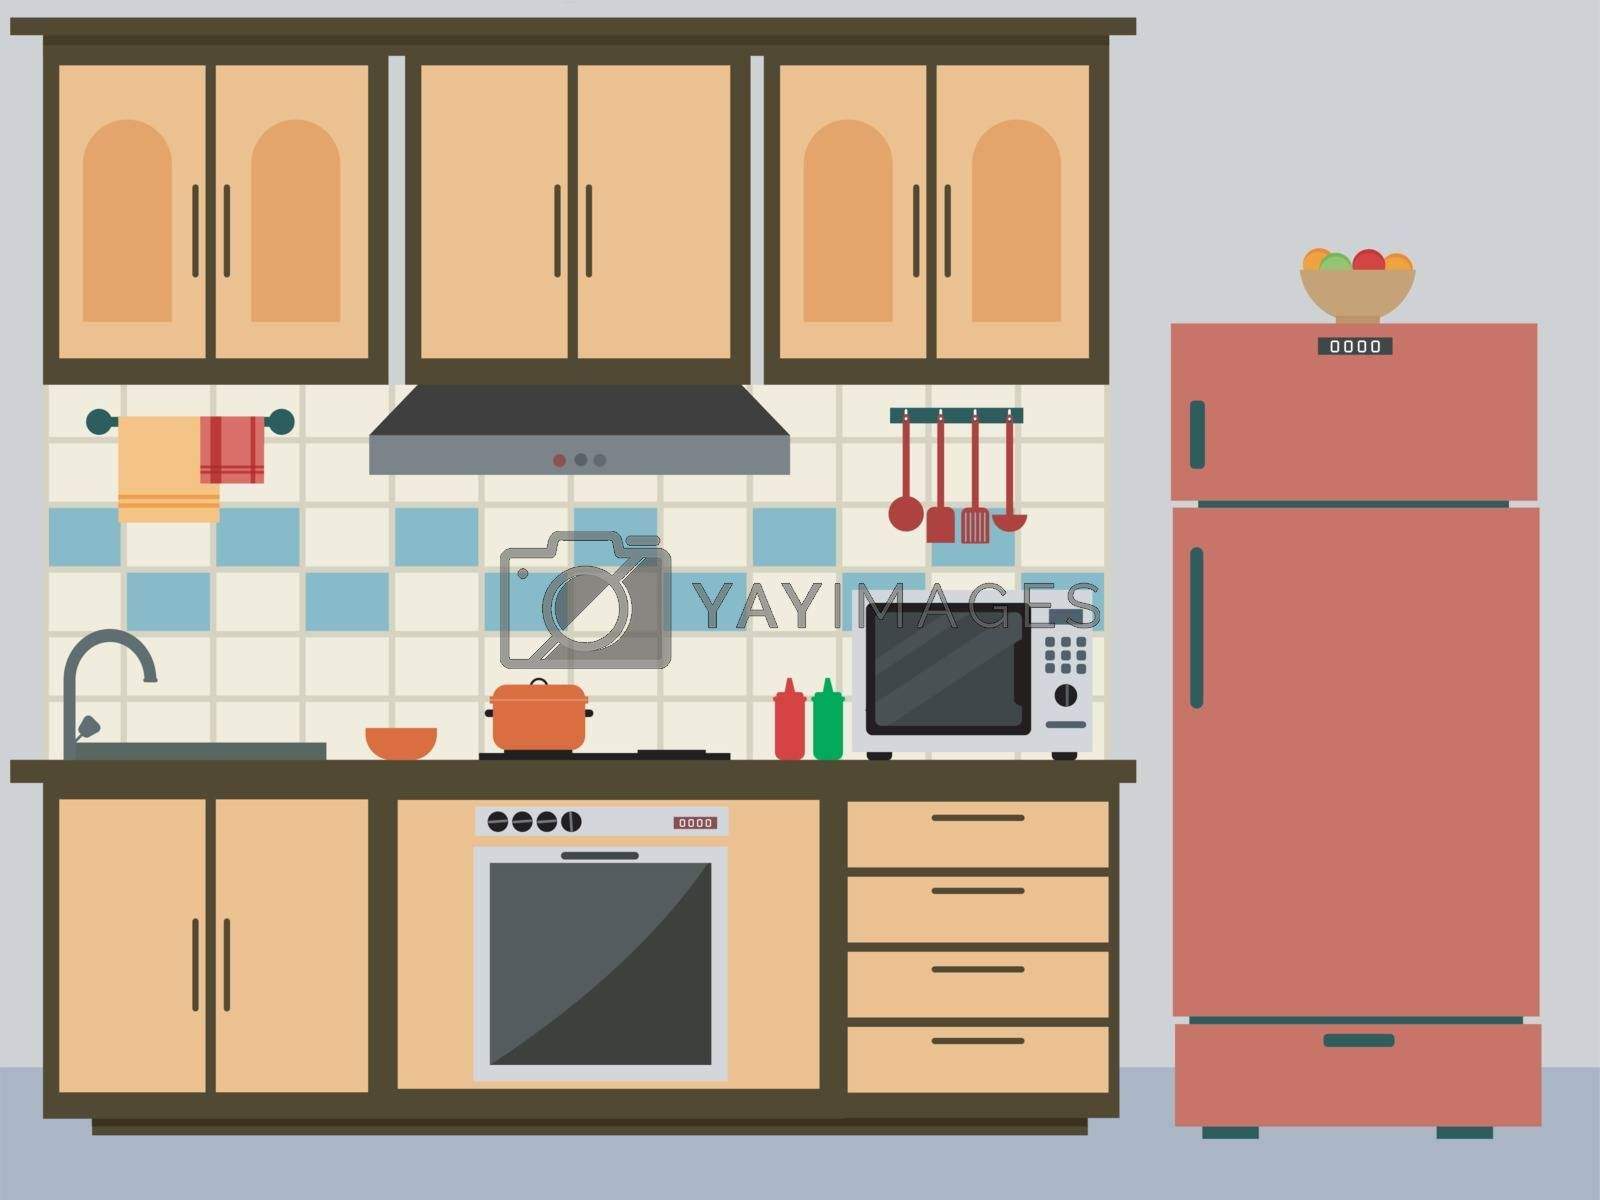 Flat Design Style Interior of a Kitchen. by aispl